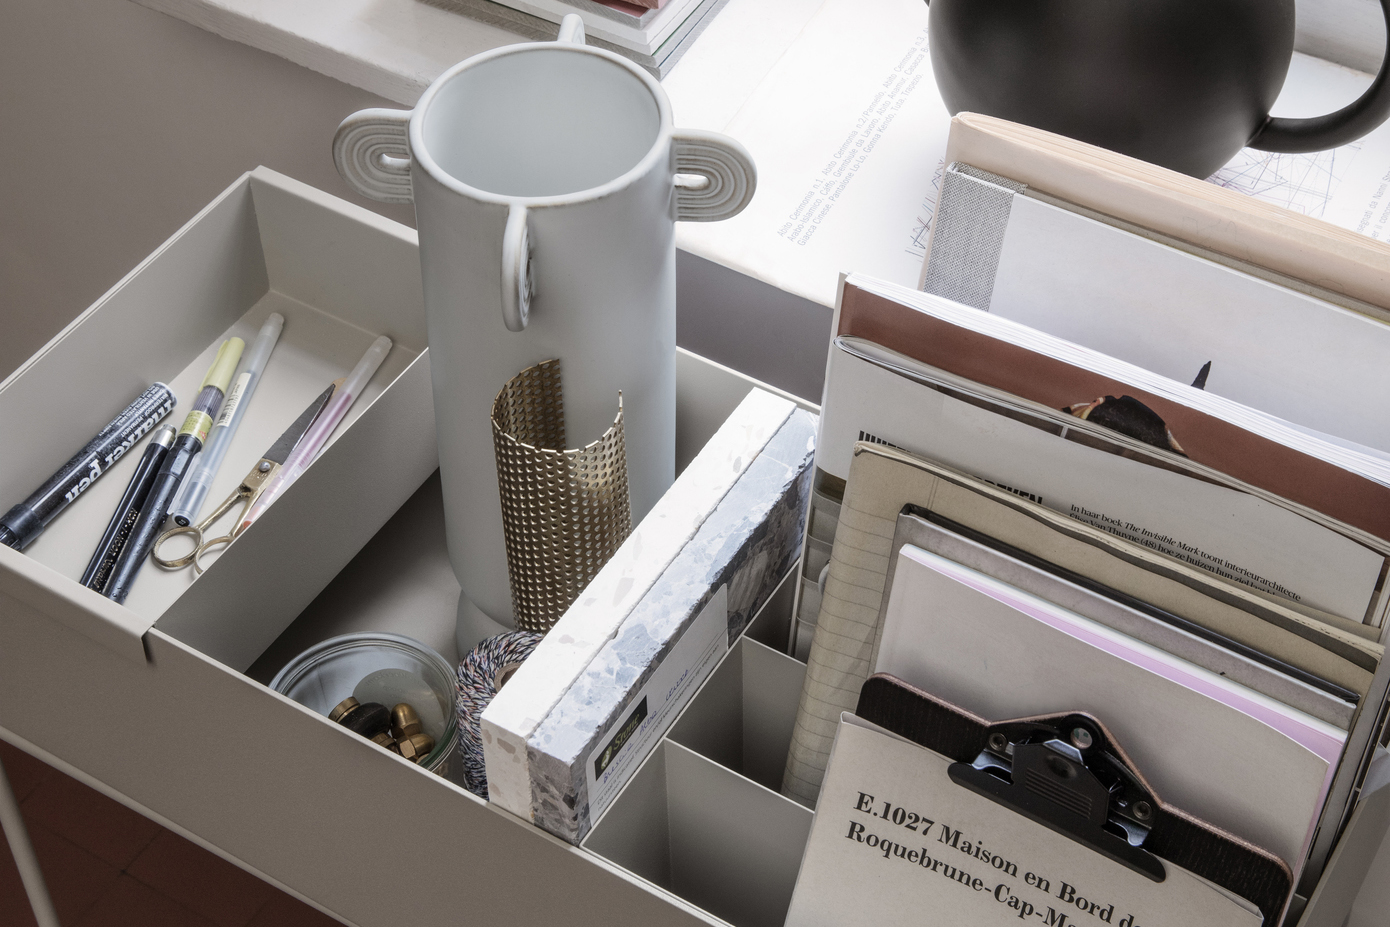 Not only will storage boxes help you find what you need, they'll also help you maintain your newly tidy home long-term